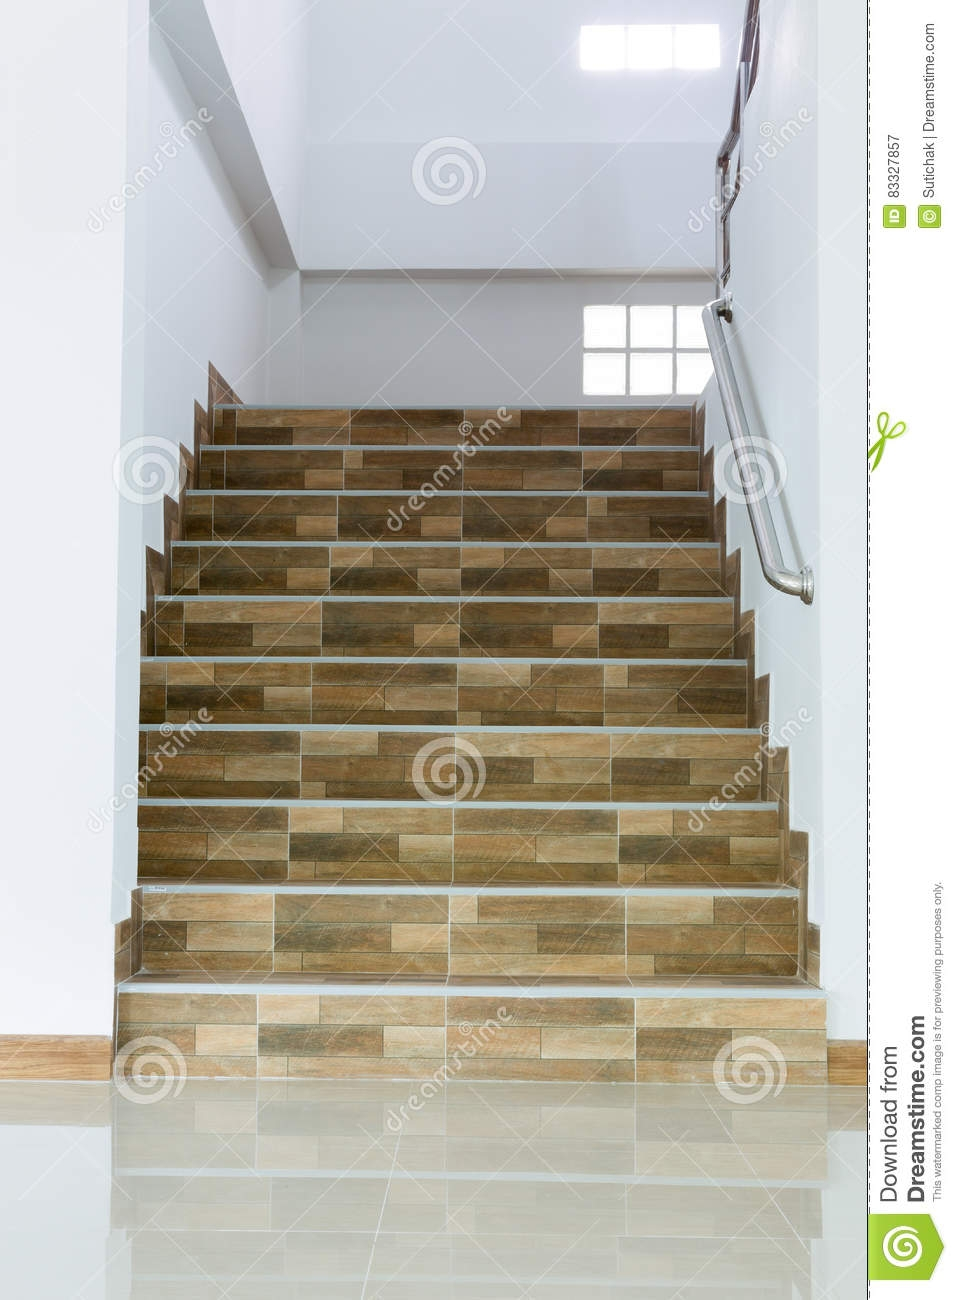 Staircase In Residential House With Stainless Steel Banister Stock | Floor Tiles Design For Stairs | Hallway Floor Tile | Stair Landing | House | Stair Riser | Wall